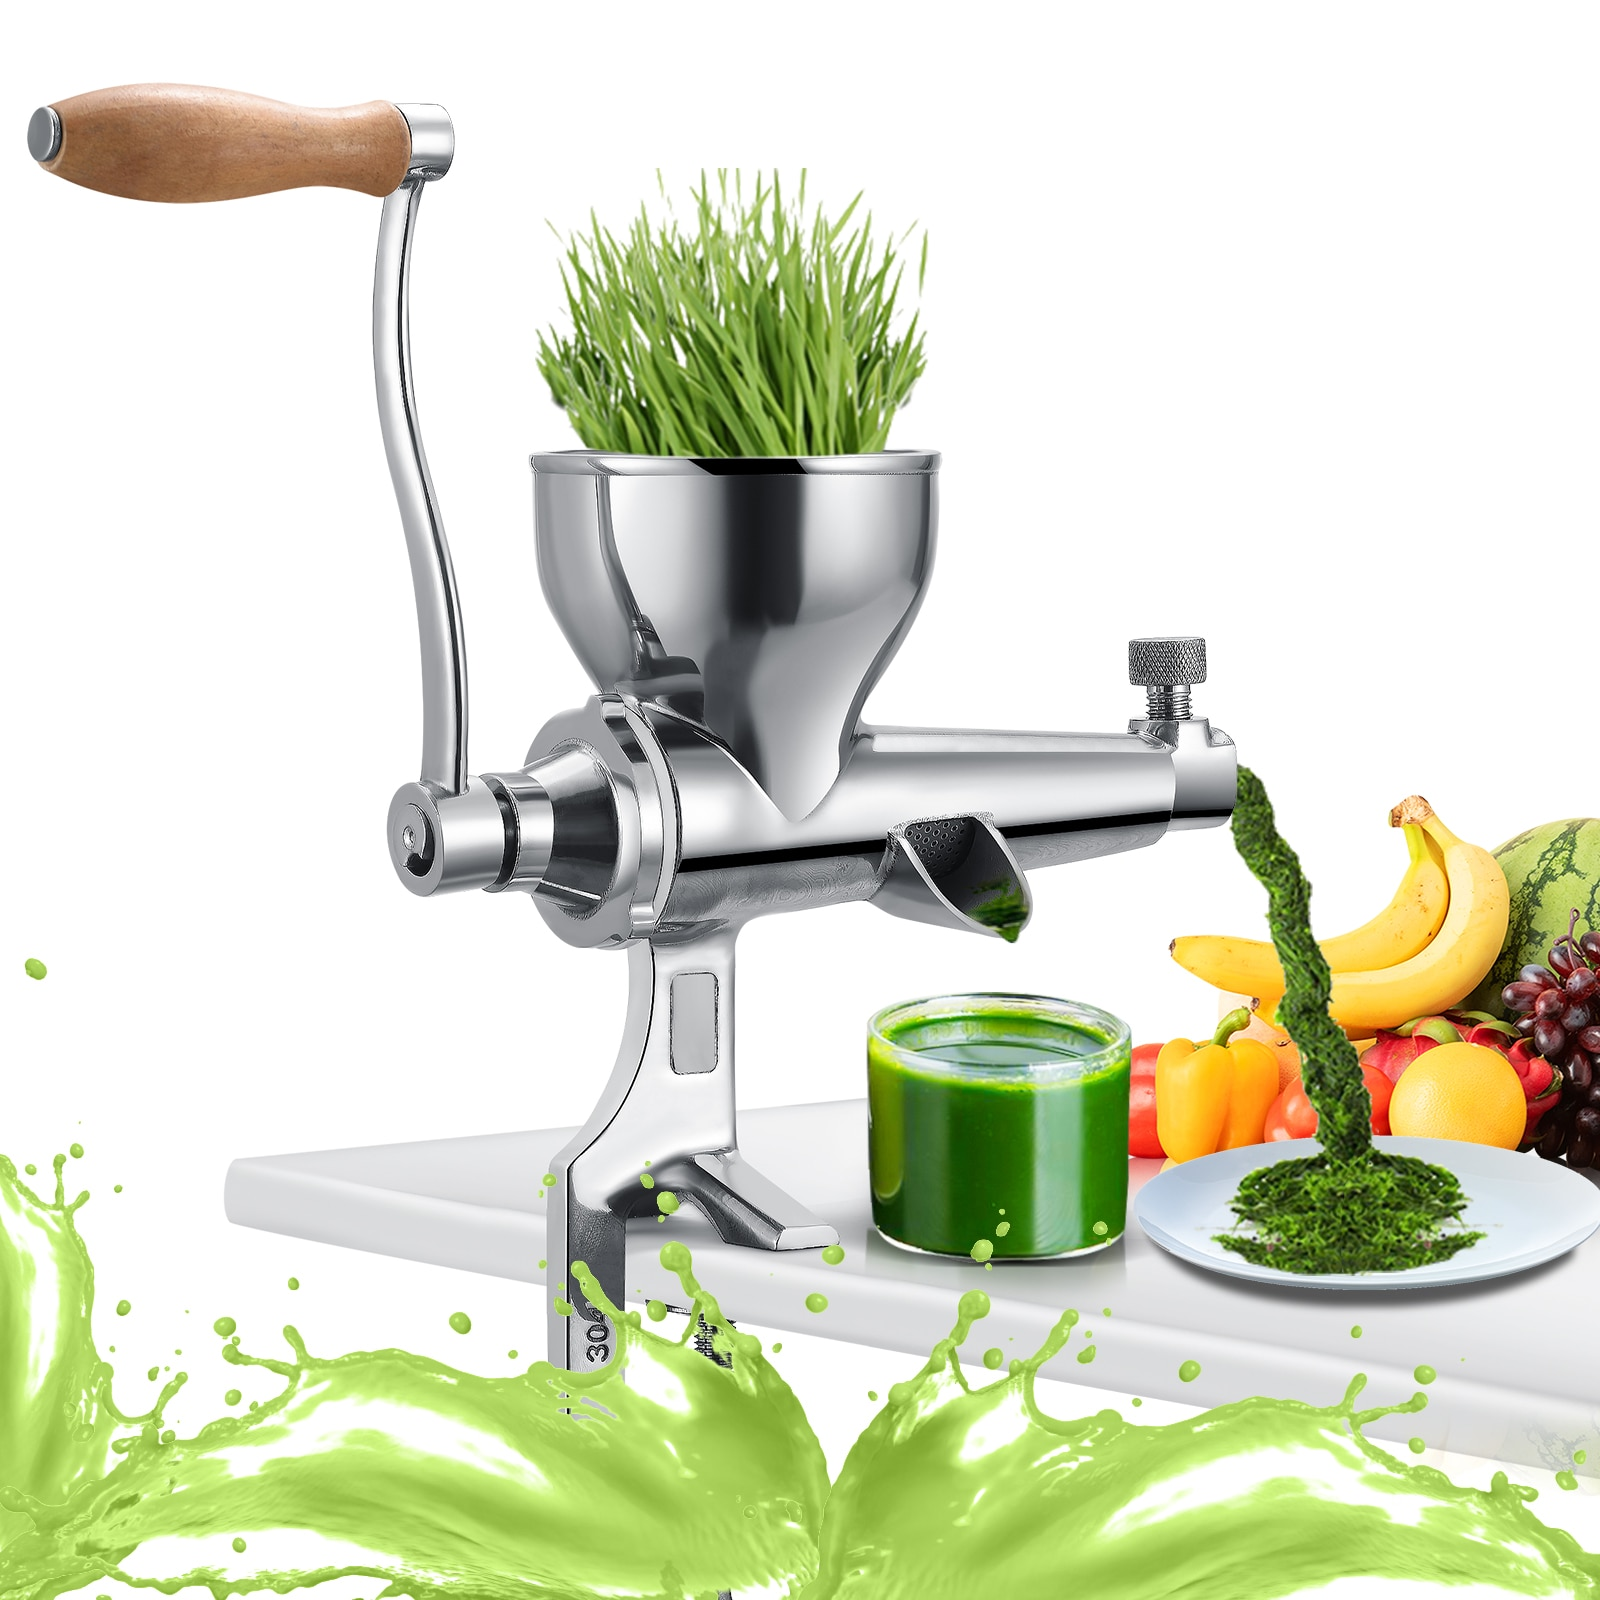 VOGVIGO Wheat Grass Juicer Wheat Grass Hand Squeegee Stainless Steel For Grass Fruit And Vegetable